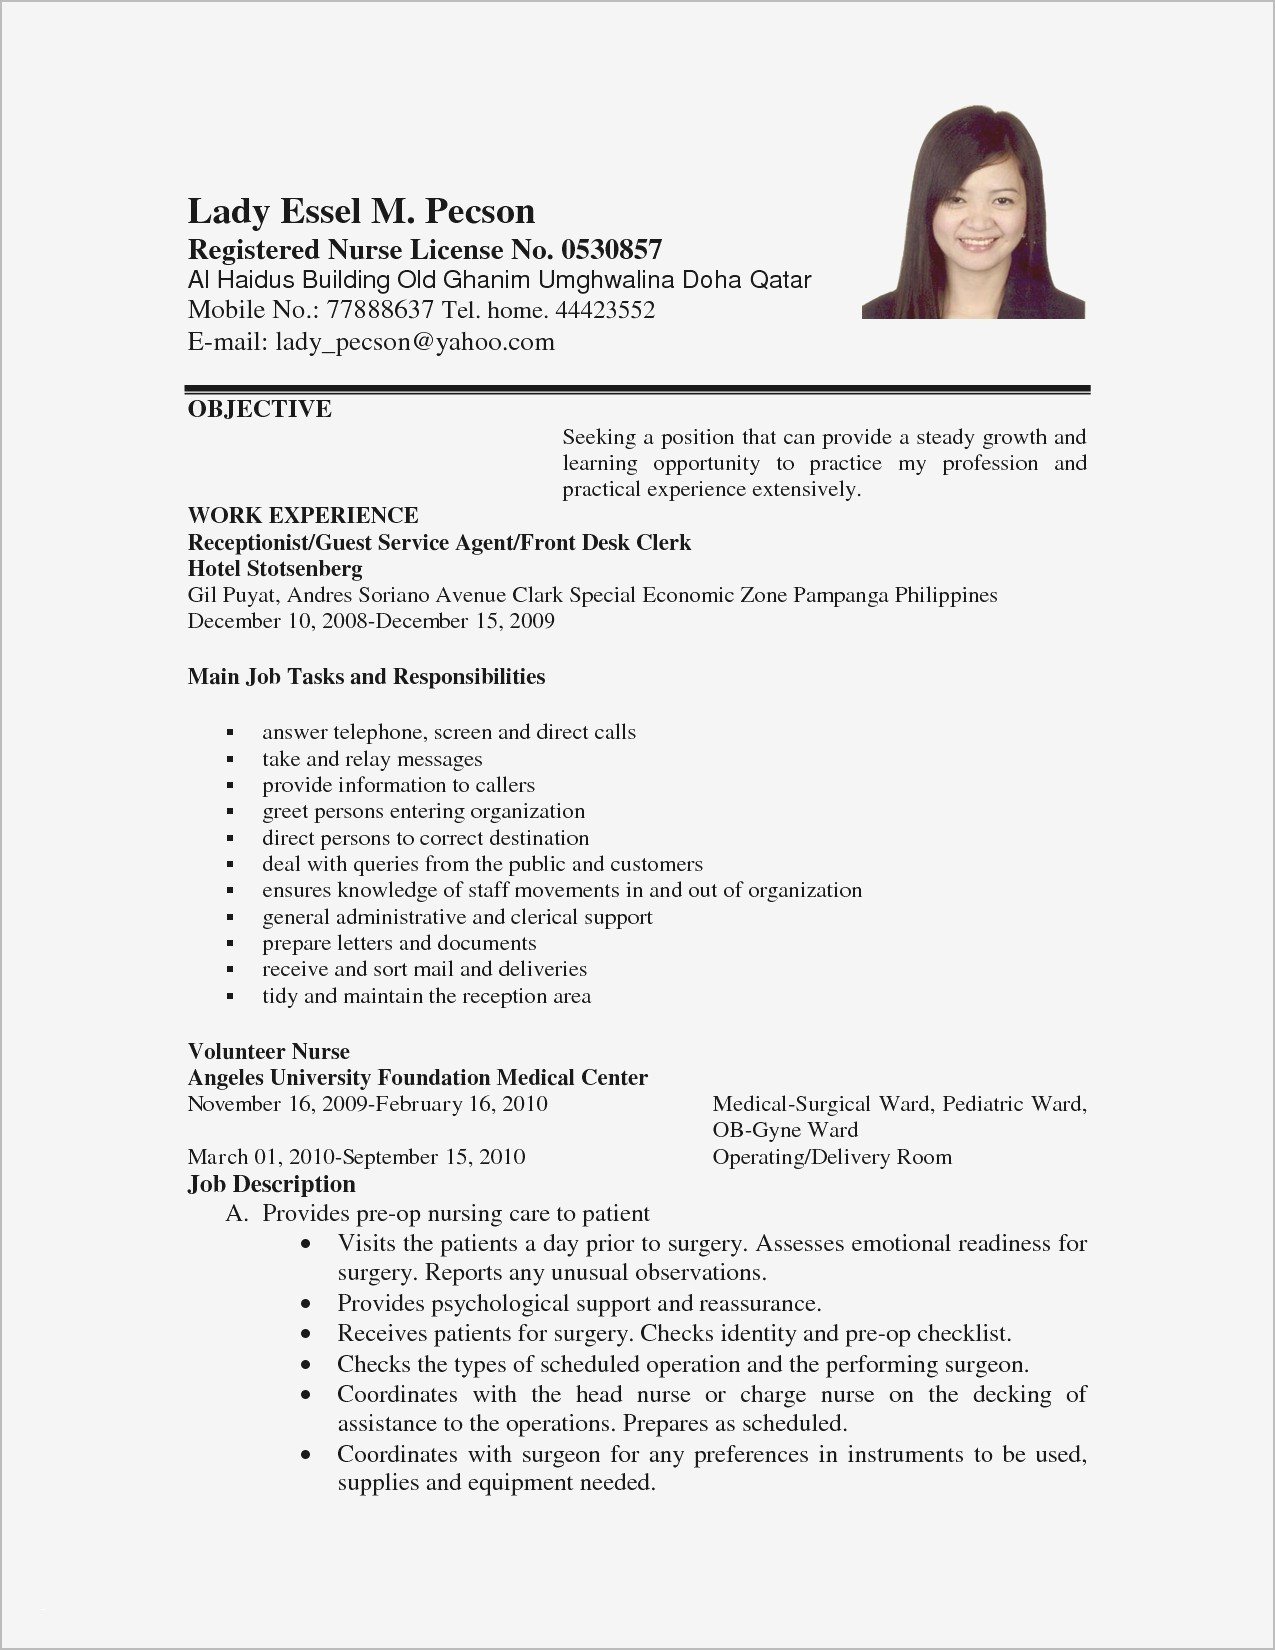 Paralegal Resume Skills - Puter Skills Resume Lovely Awesome Research Skills Resume New